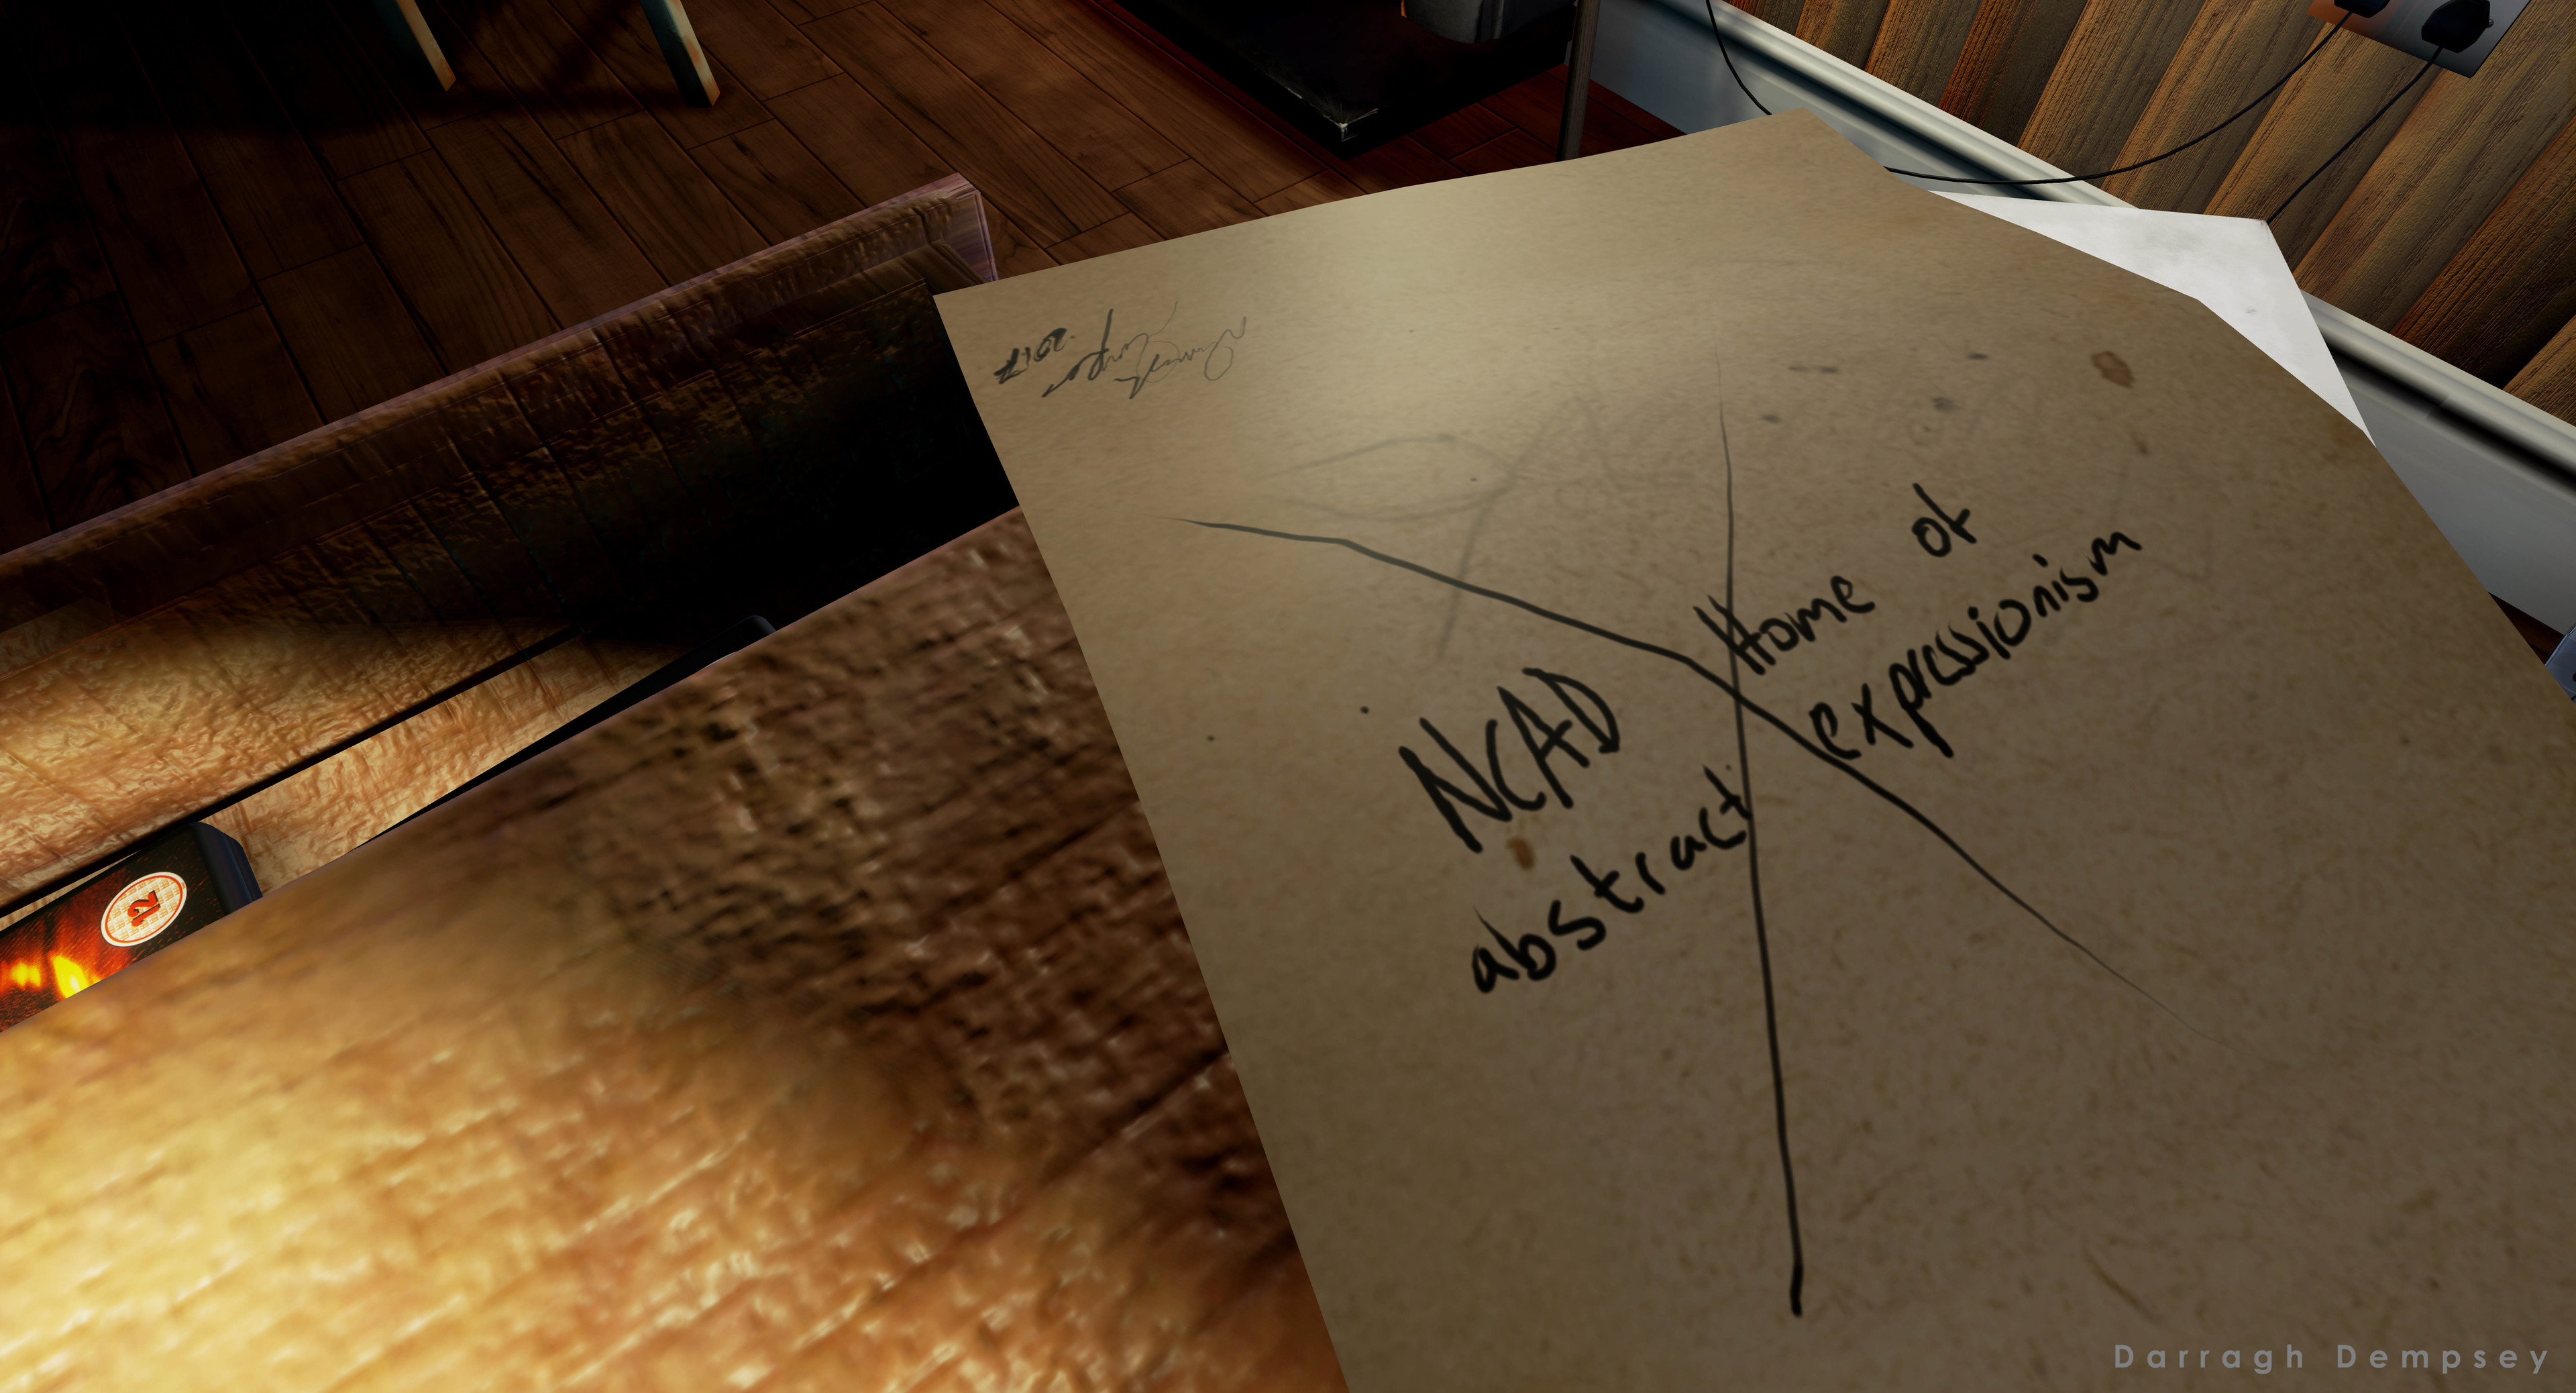 Upside down note easter egg. Unreal Engine Screenshot.